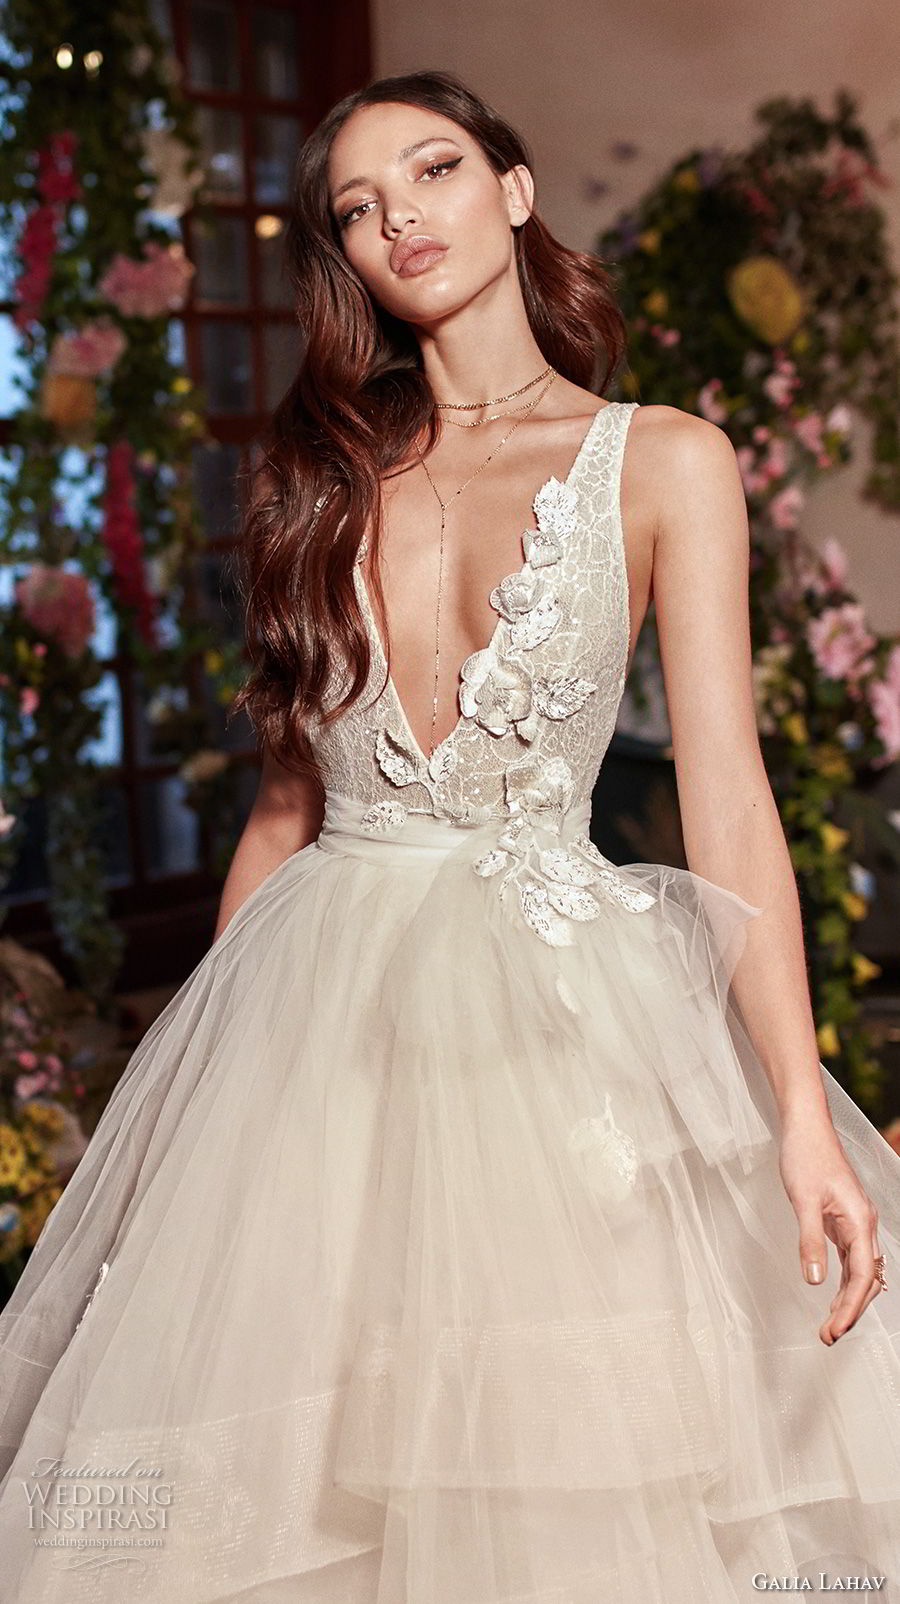 galia lahav couture fall 2018 bridal sleeveless deep v neck heavily embellished bodice tulle layered skirt sexy romantic a line wedding dress open back medium train (8) zv